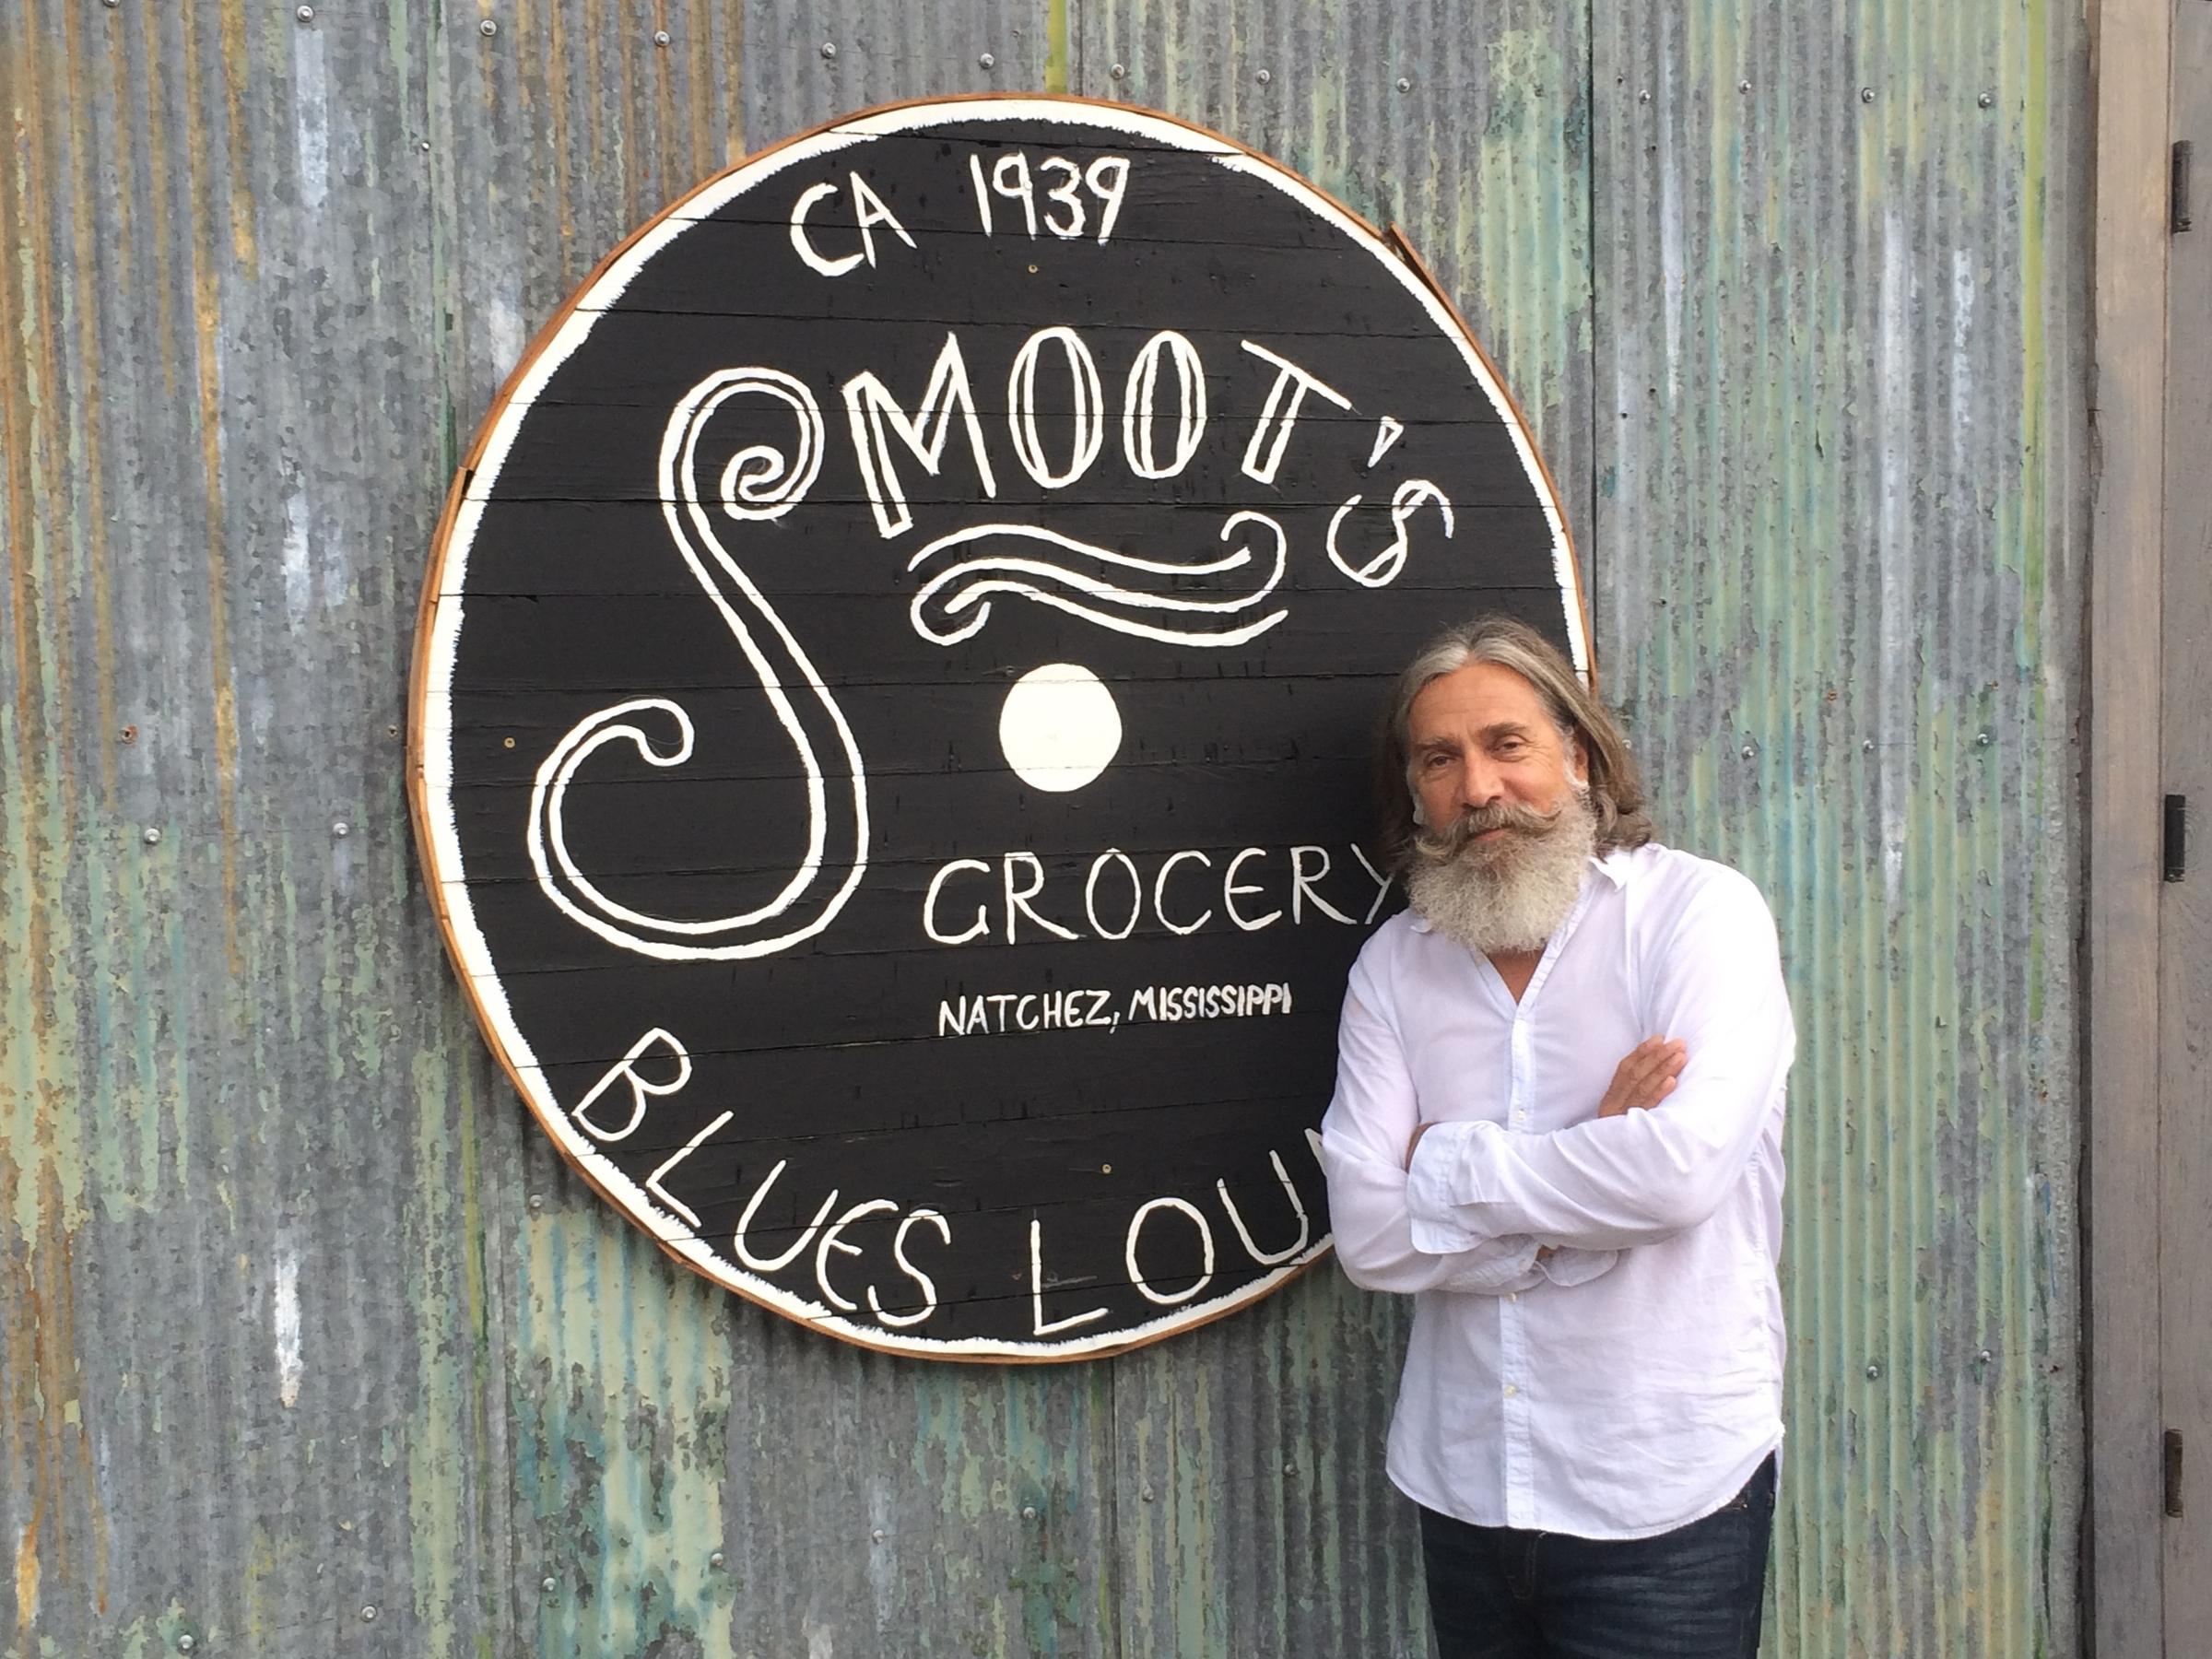 Smoot's Grocery owner Dub Rogers  POPPY TOOKER